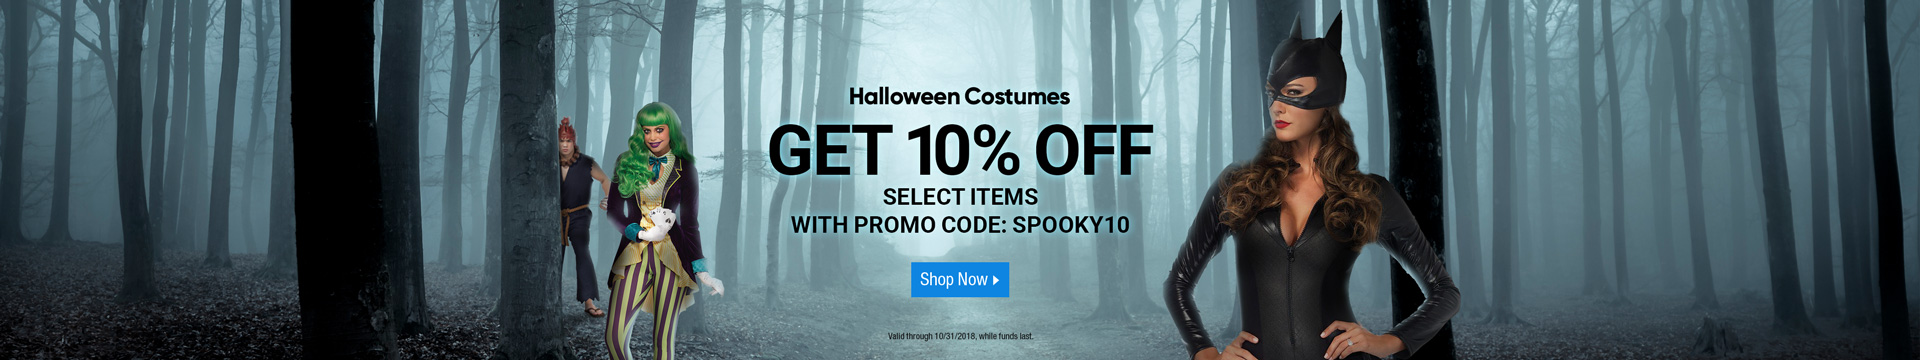 Get 10% off select items with promo code